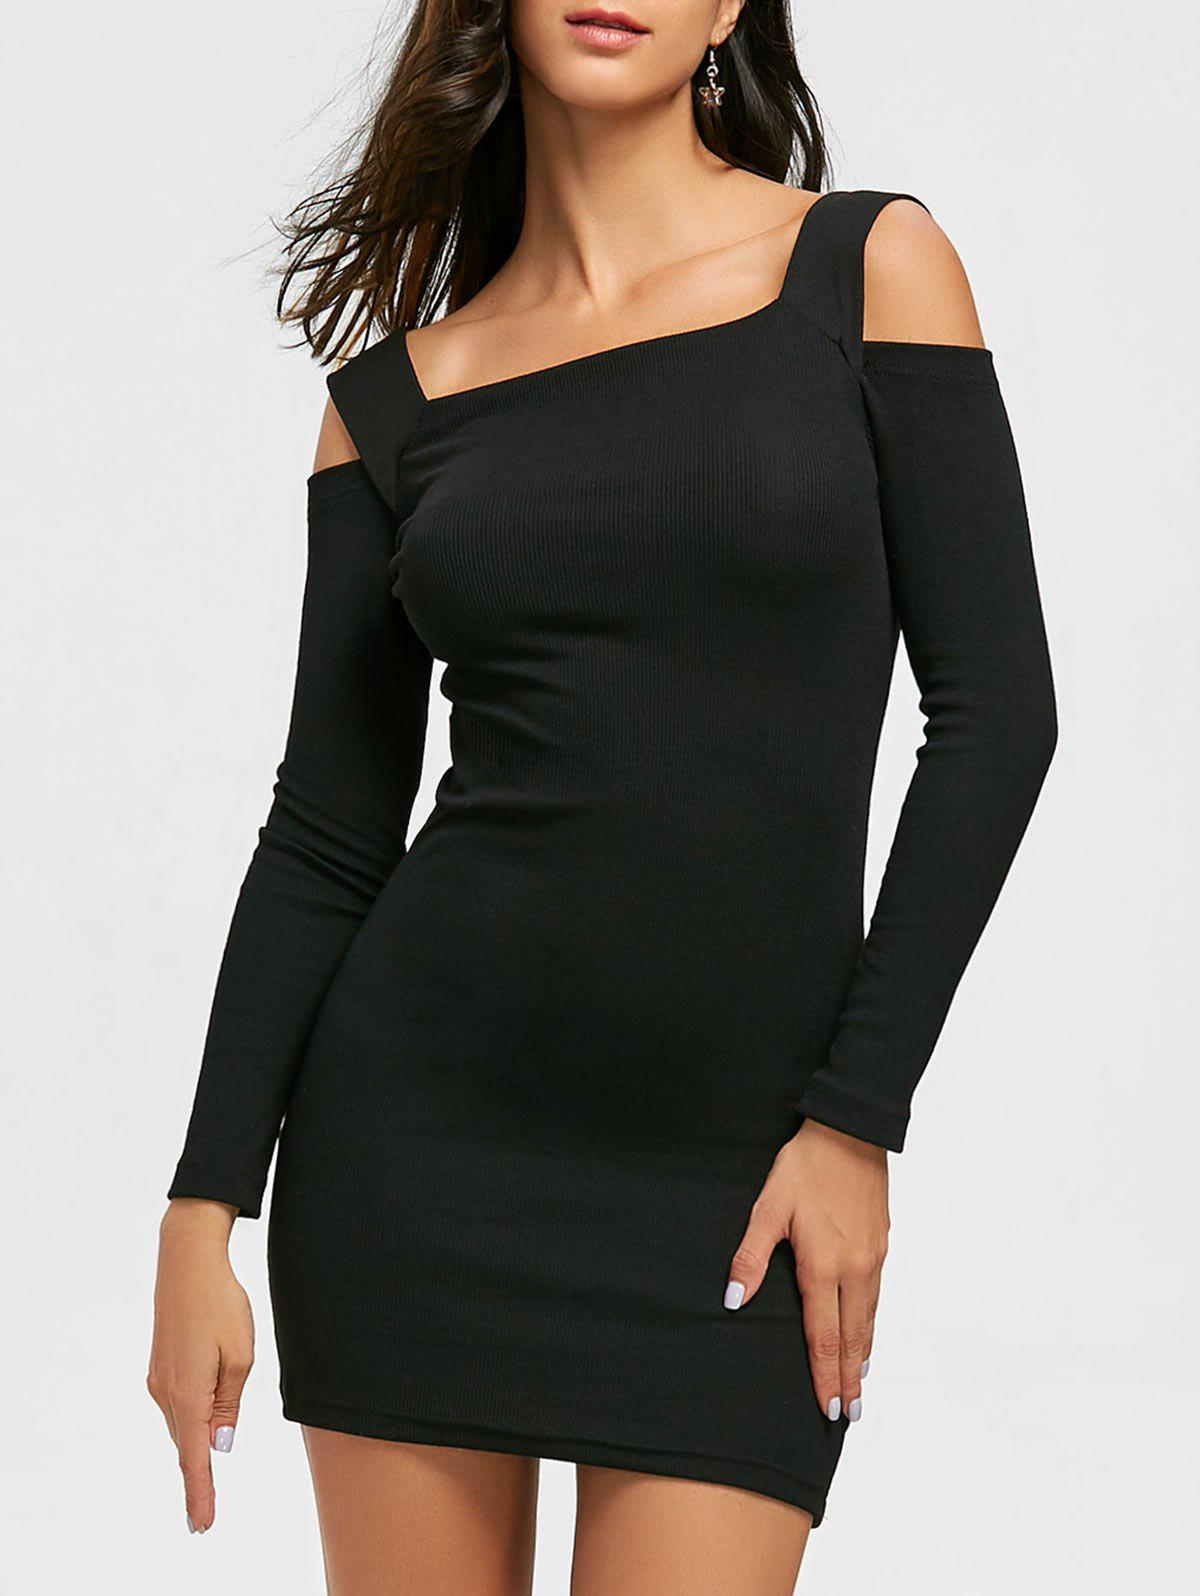 Cold Shoulder Bodycon Mini Sweater Dress - BLACK 2XL